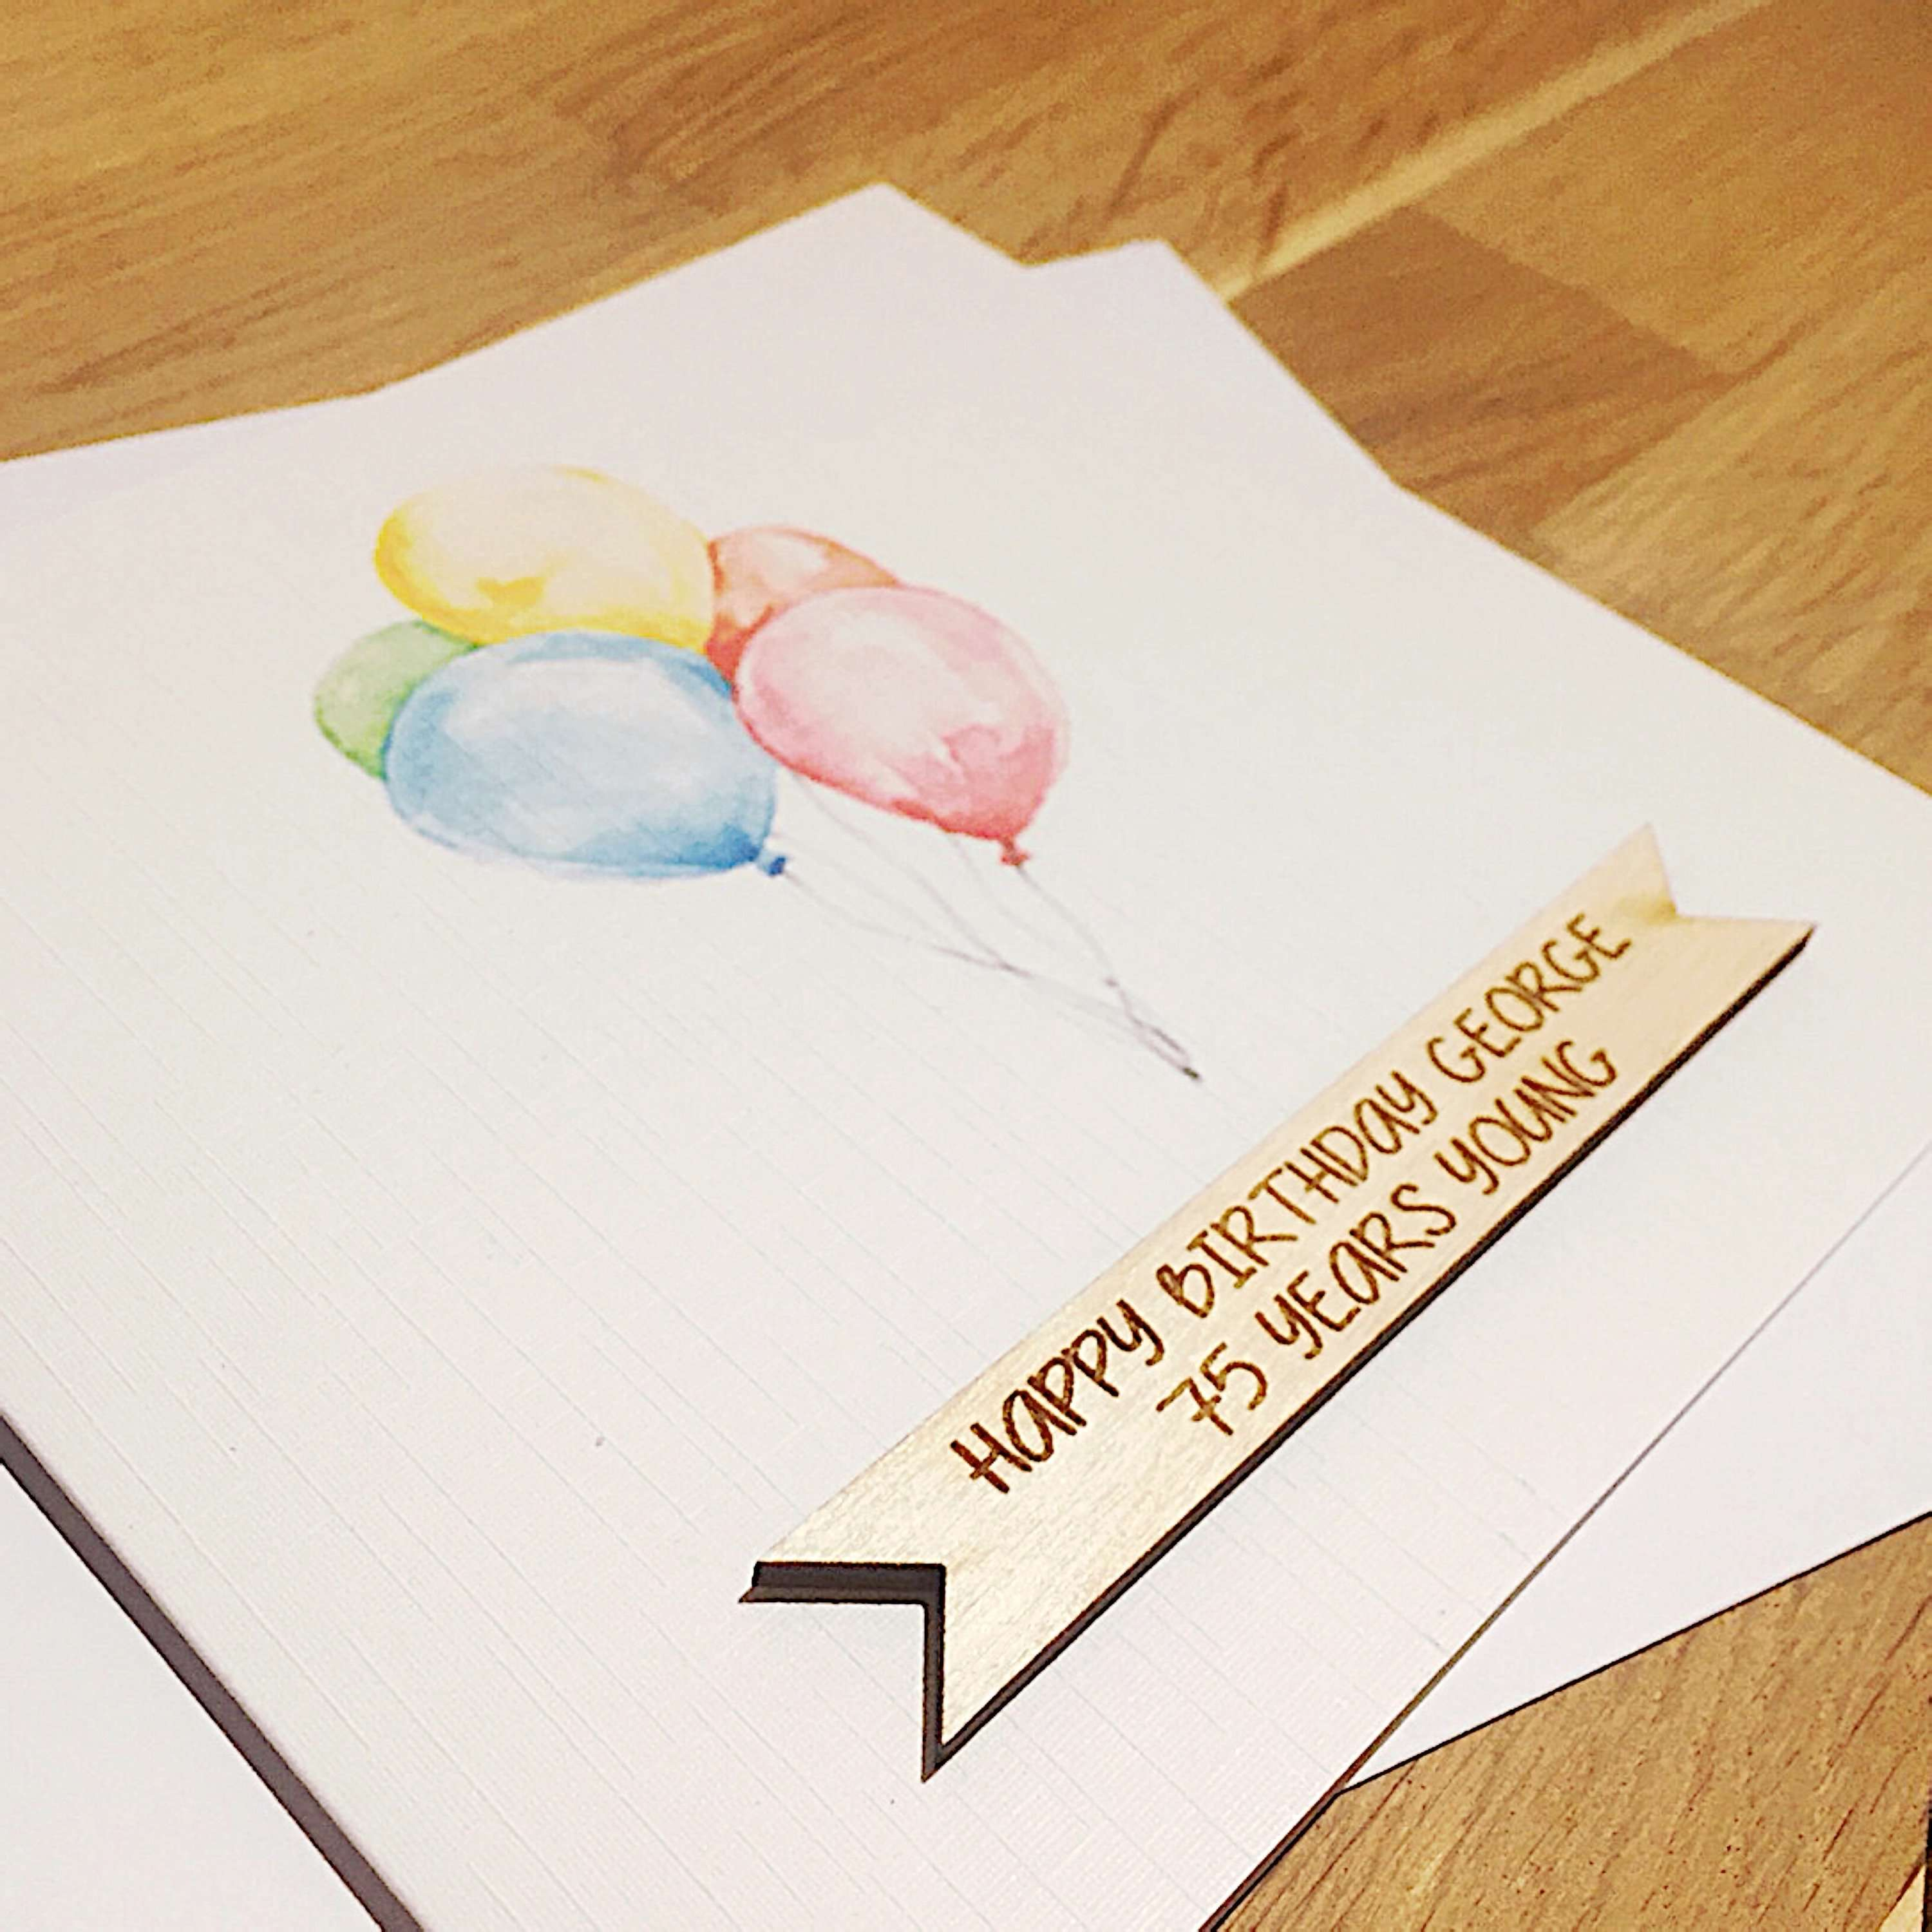 Unusual greetings cards, birthday bespoke.